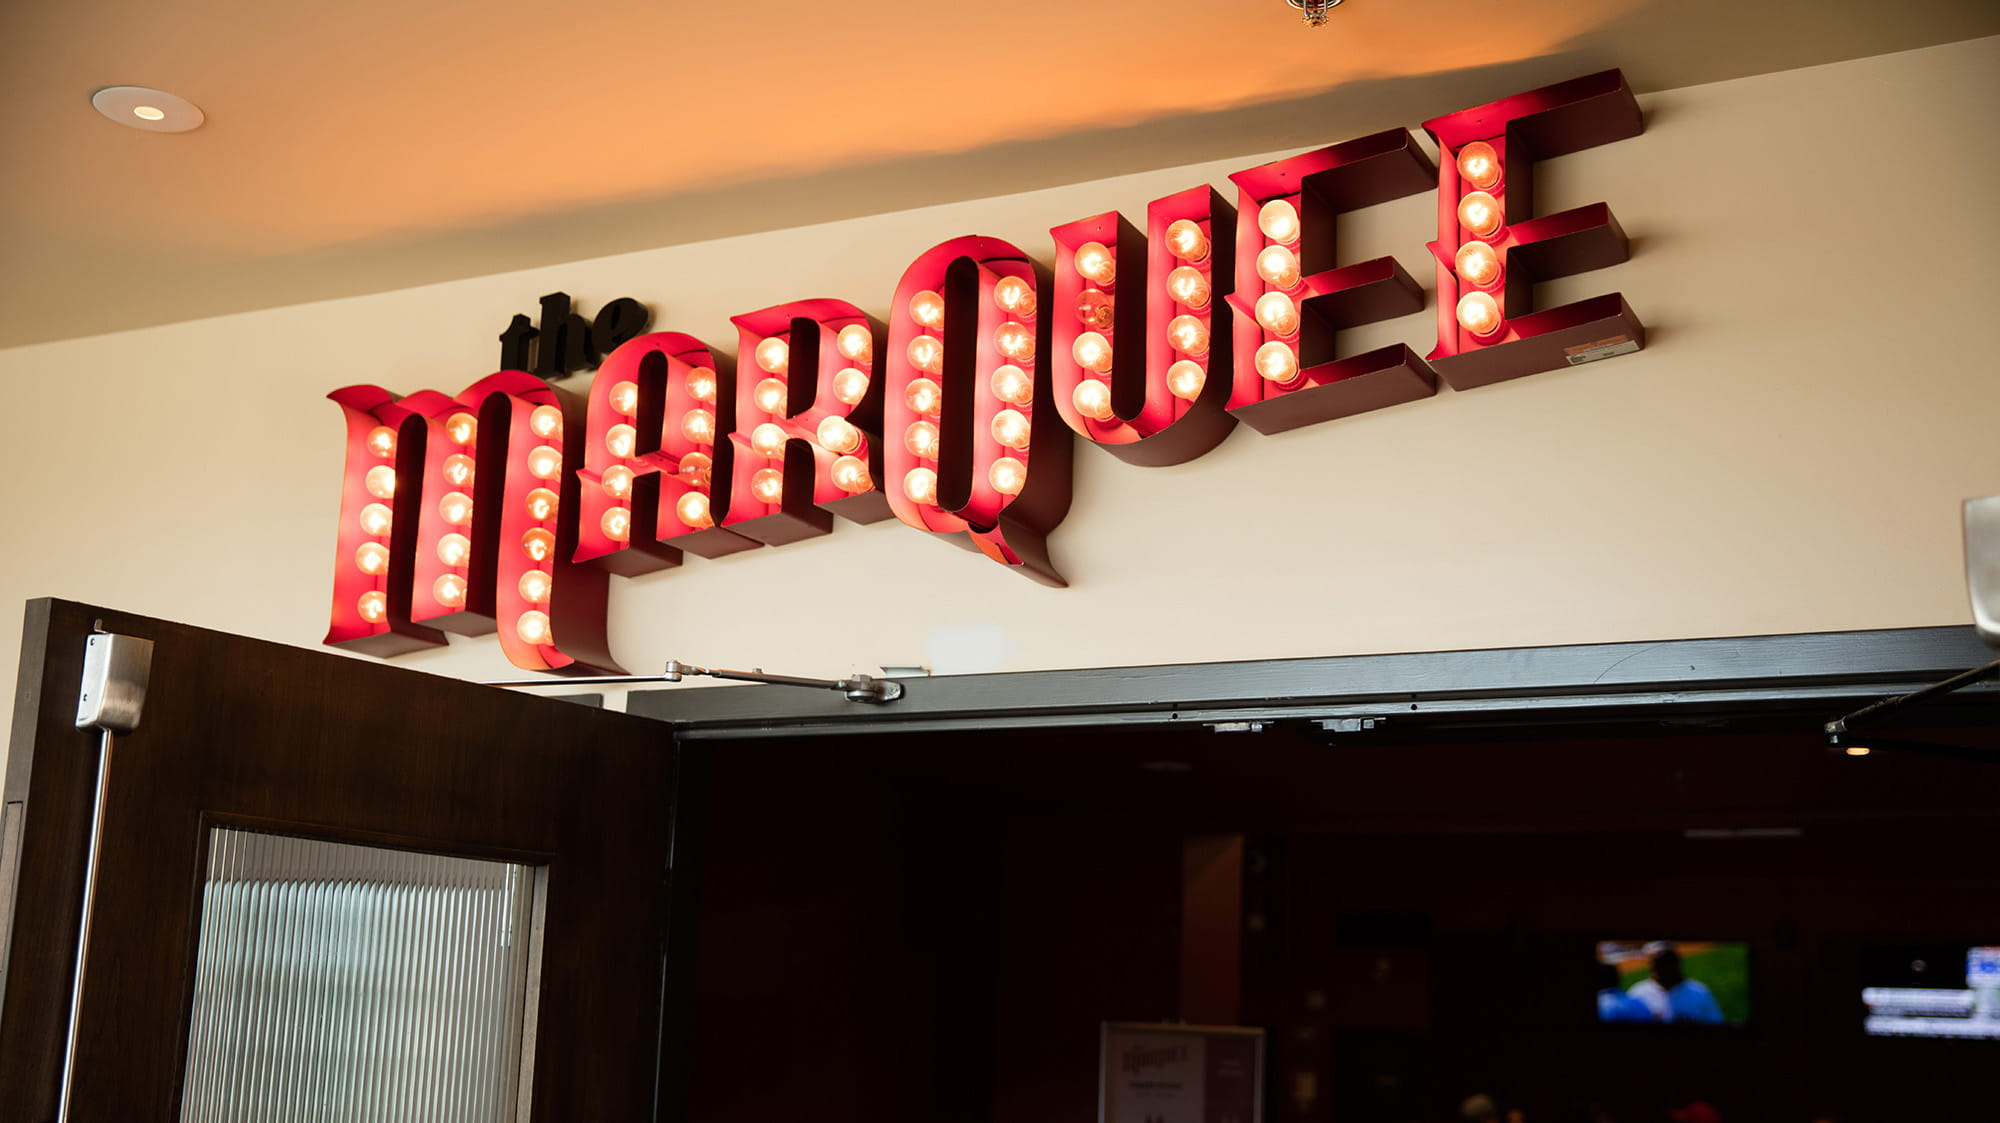 The Marquee sign with red letters and lights over the door to the pub